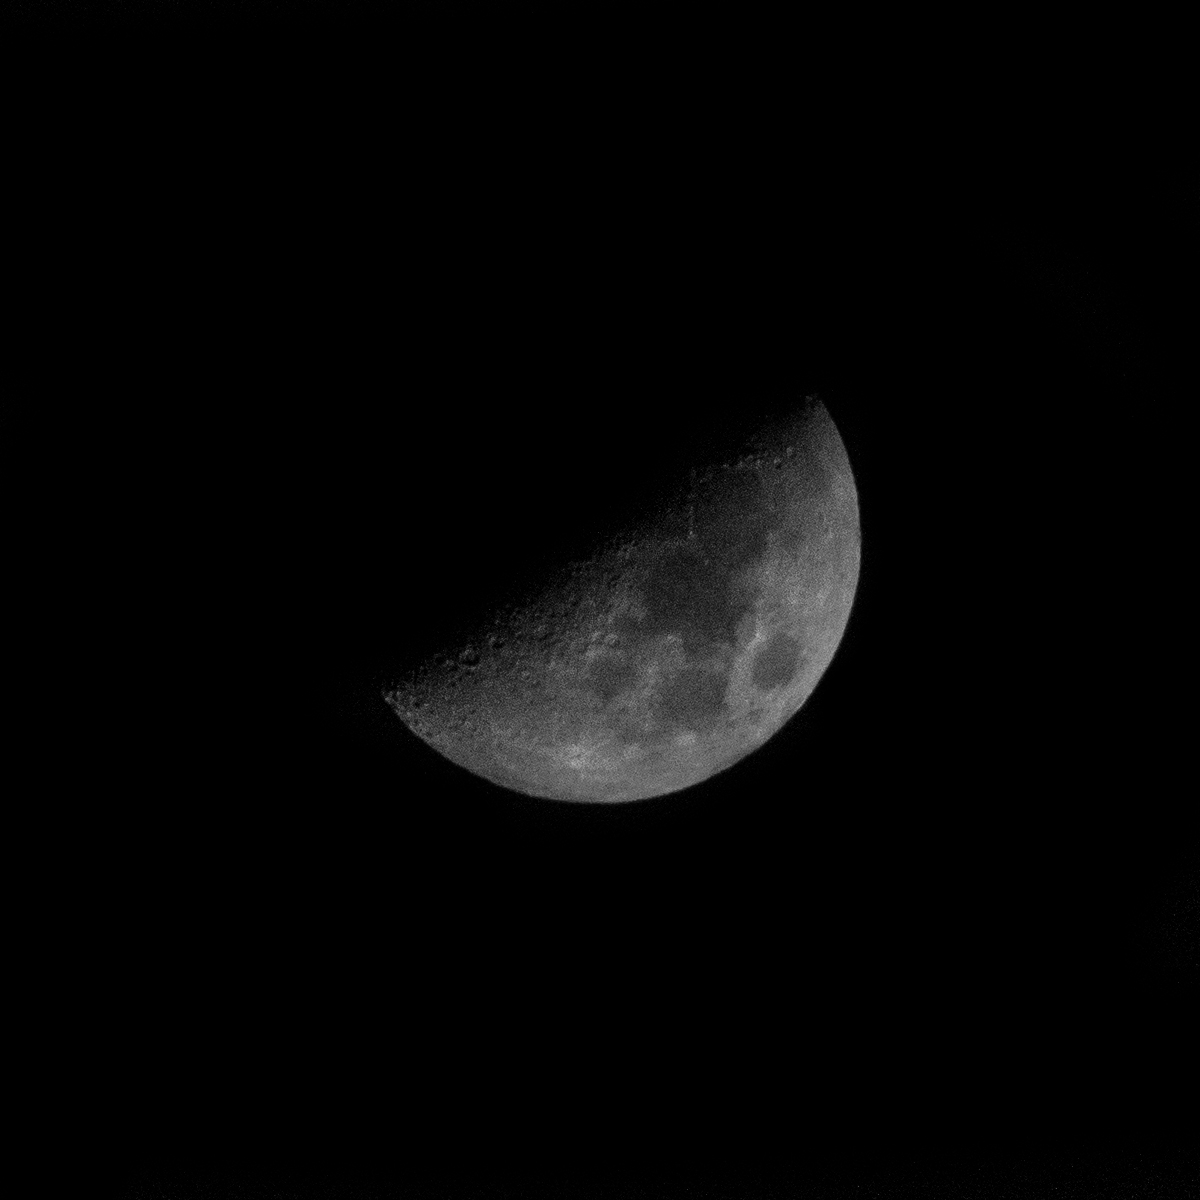 365 - 18 - The Moon